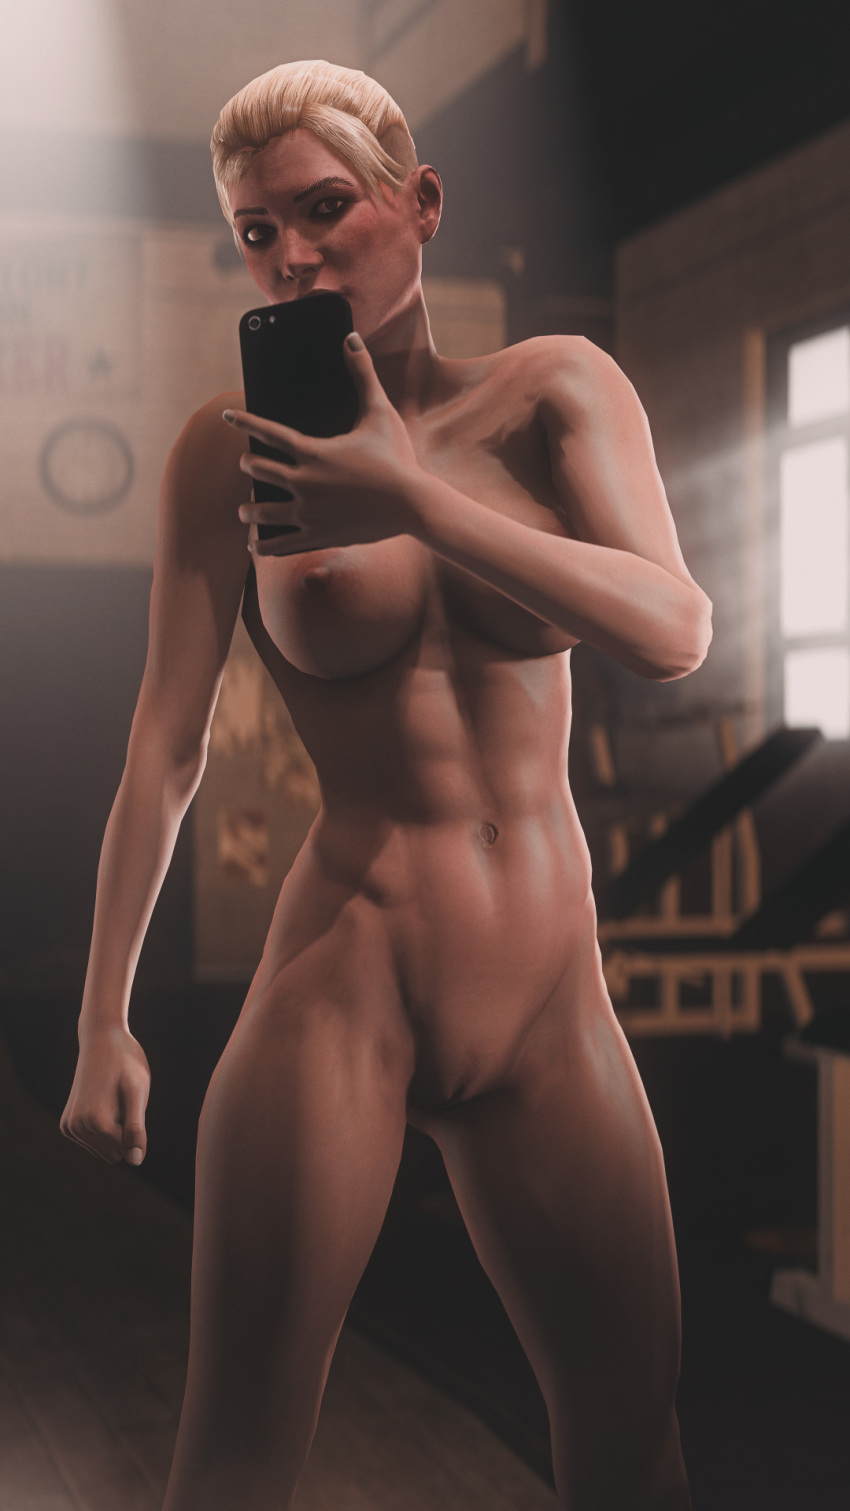 1girl 2016 3d 5_fingers abs absurdres areolae big_breasts blonde_hair blush breasts brown_eyes cassie_cage eyebrows eyelashes female_only fit hair hands human large_breasts lips looking_at_viewer mortal_kombat mortal_kombat_x muscle_tone muscular muscular_female navel netherrealm_studios nipples nose nude phone pussy selfie sfmporn solo source_filmmaker standing